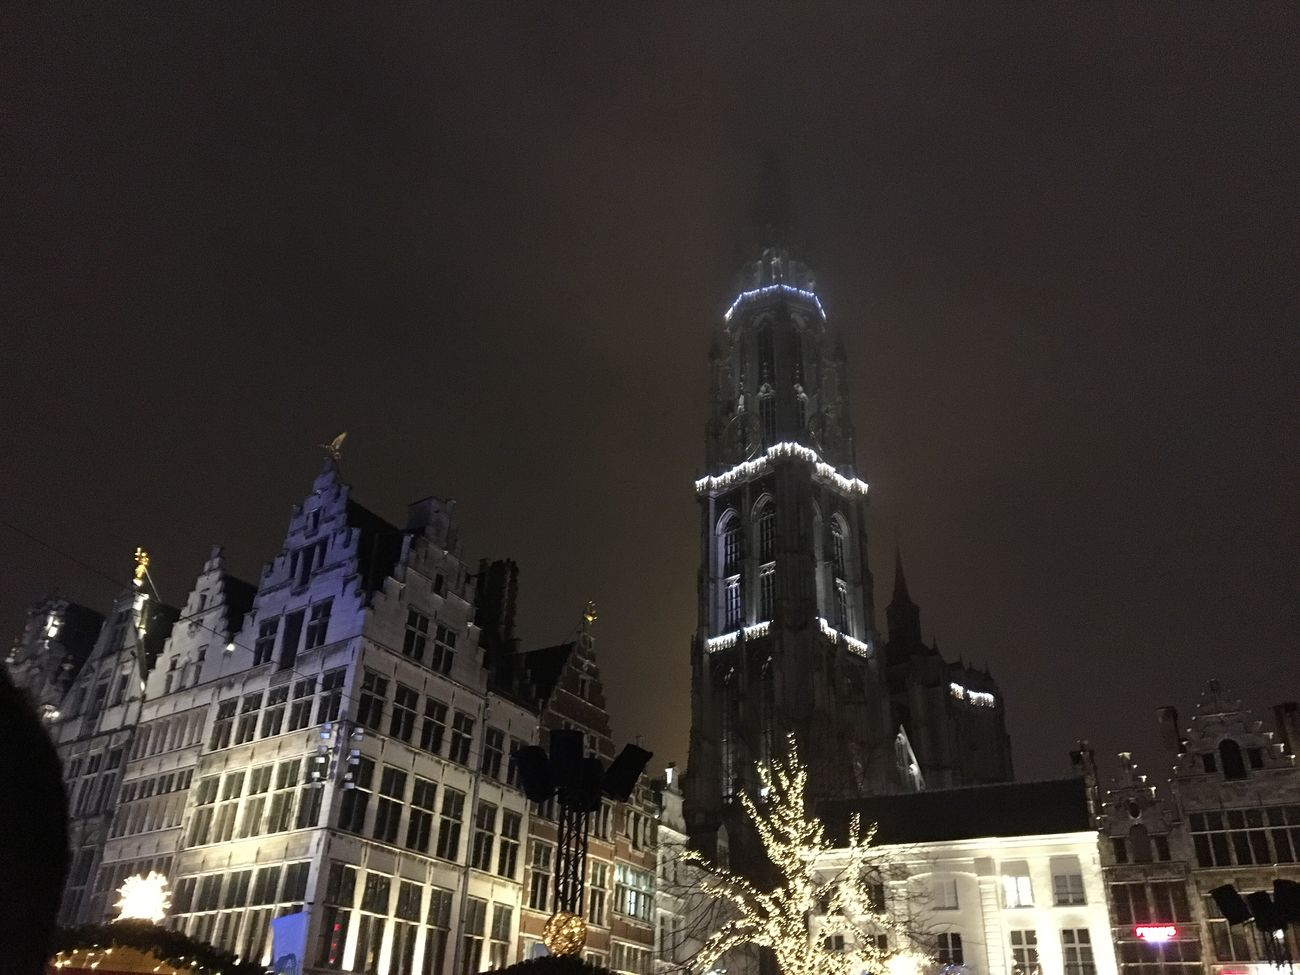 Architecture Building Exterior Built Structure City Low Angle View Night Illuminated No People Outdoors Sky Cathedral Onzelievevrouwekathedraal Antwerpen Groenplaats